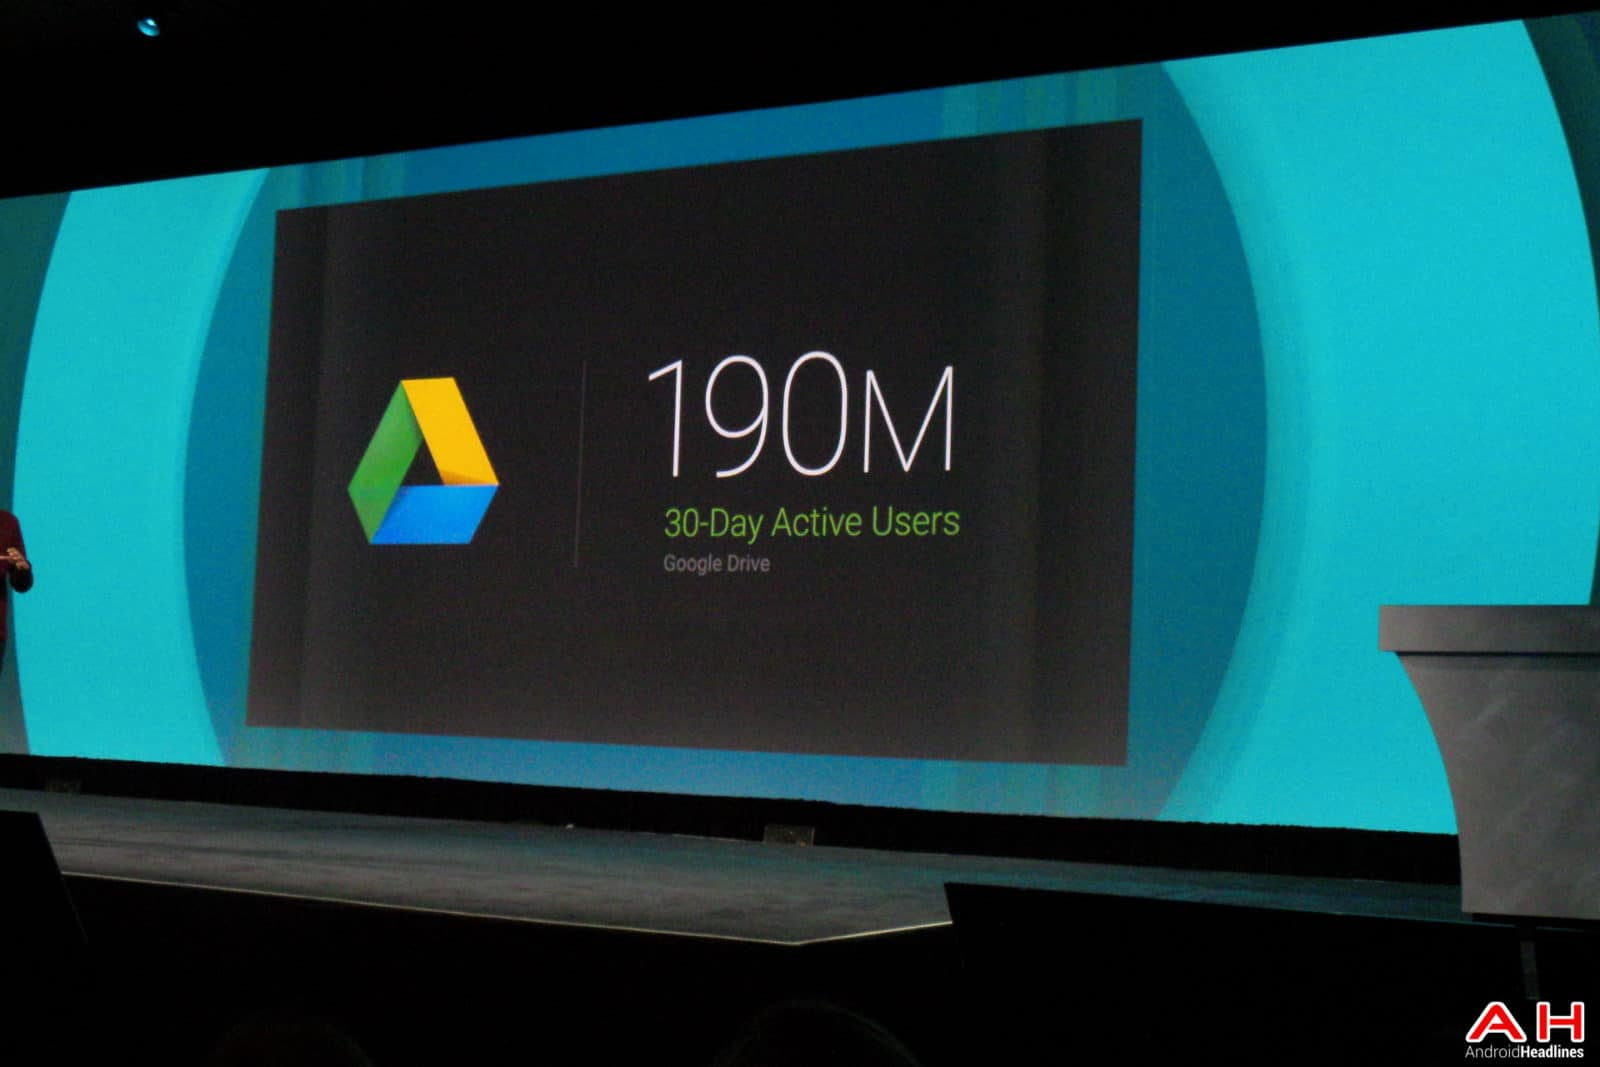 AH Google IO 2014 (701 of 5) 190 Million Activations